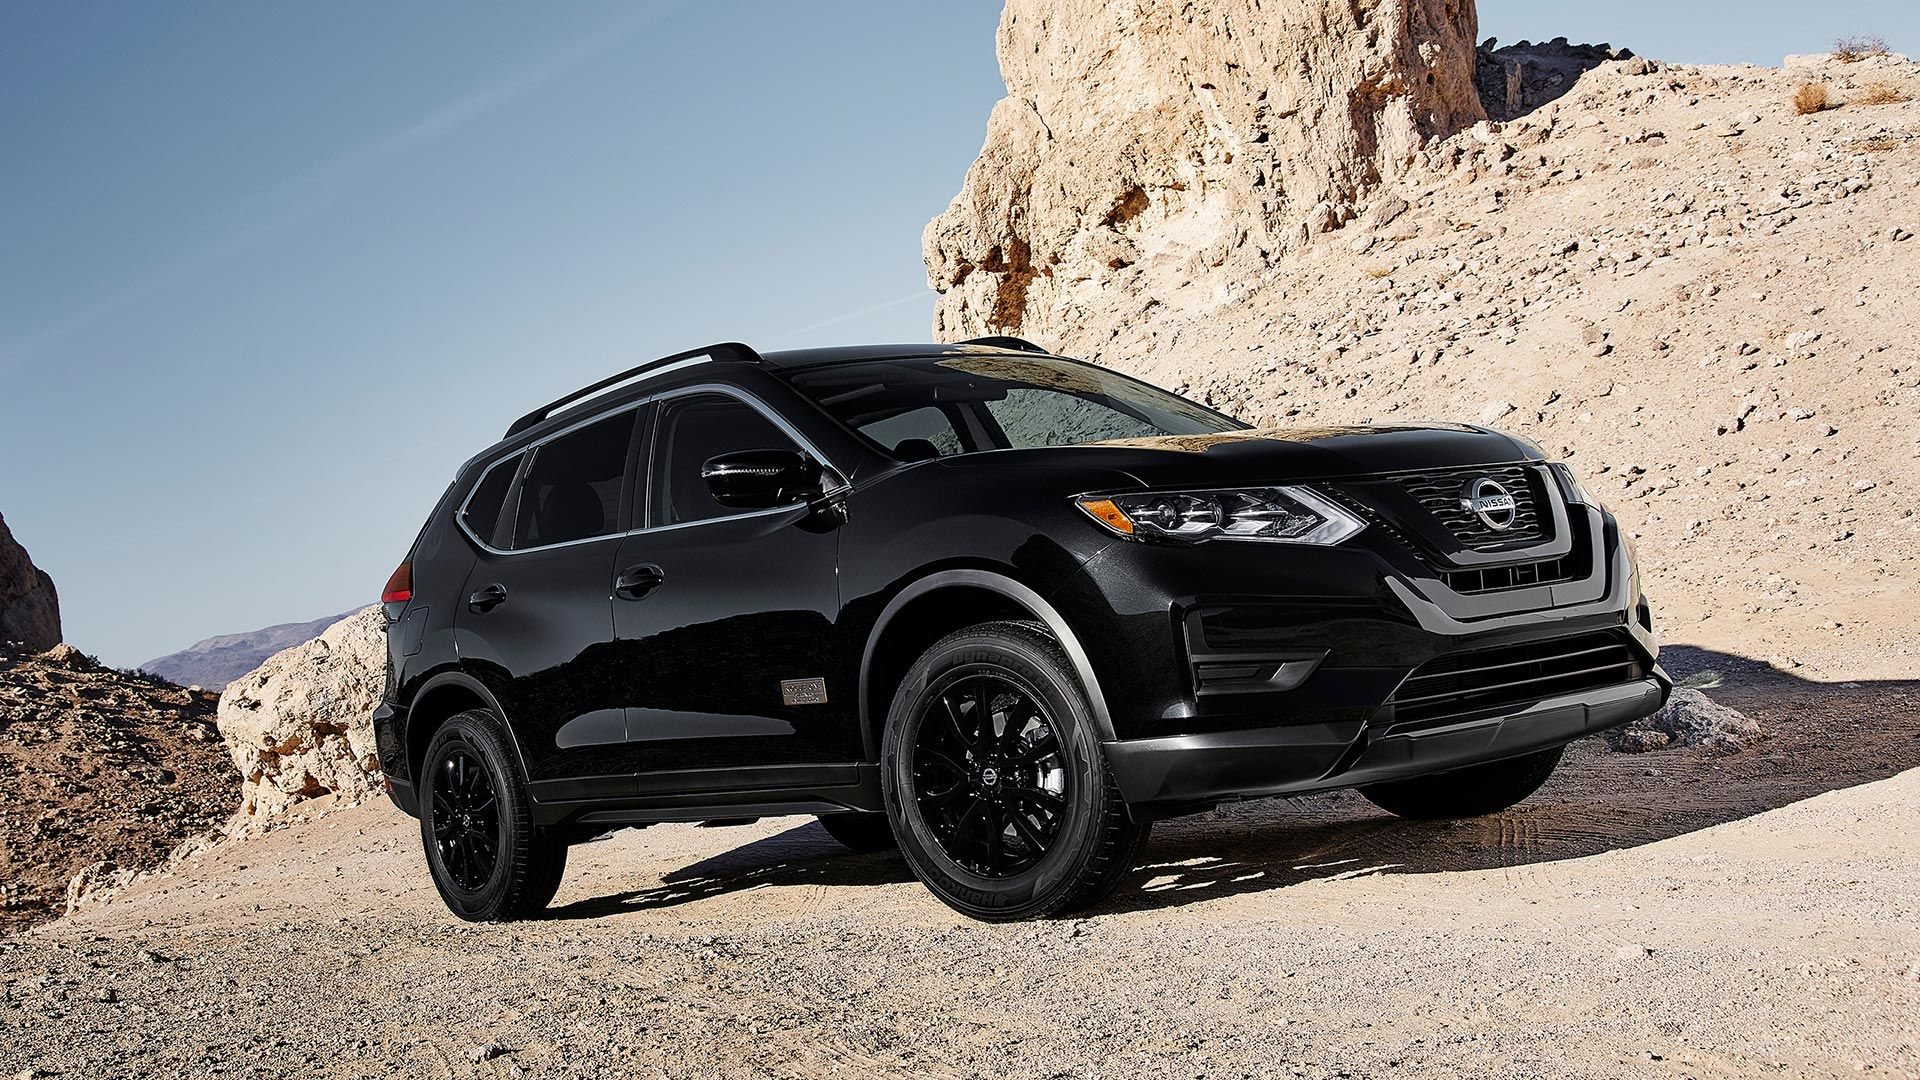 2017 Nissan Rogue One Star Wars Limited Edition in